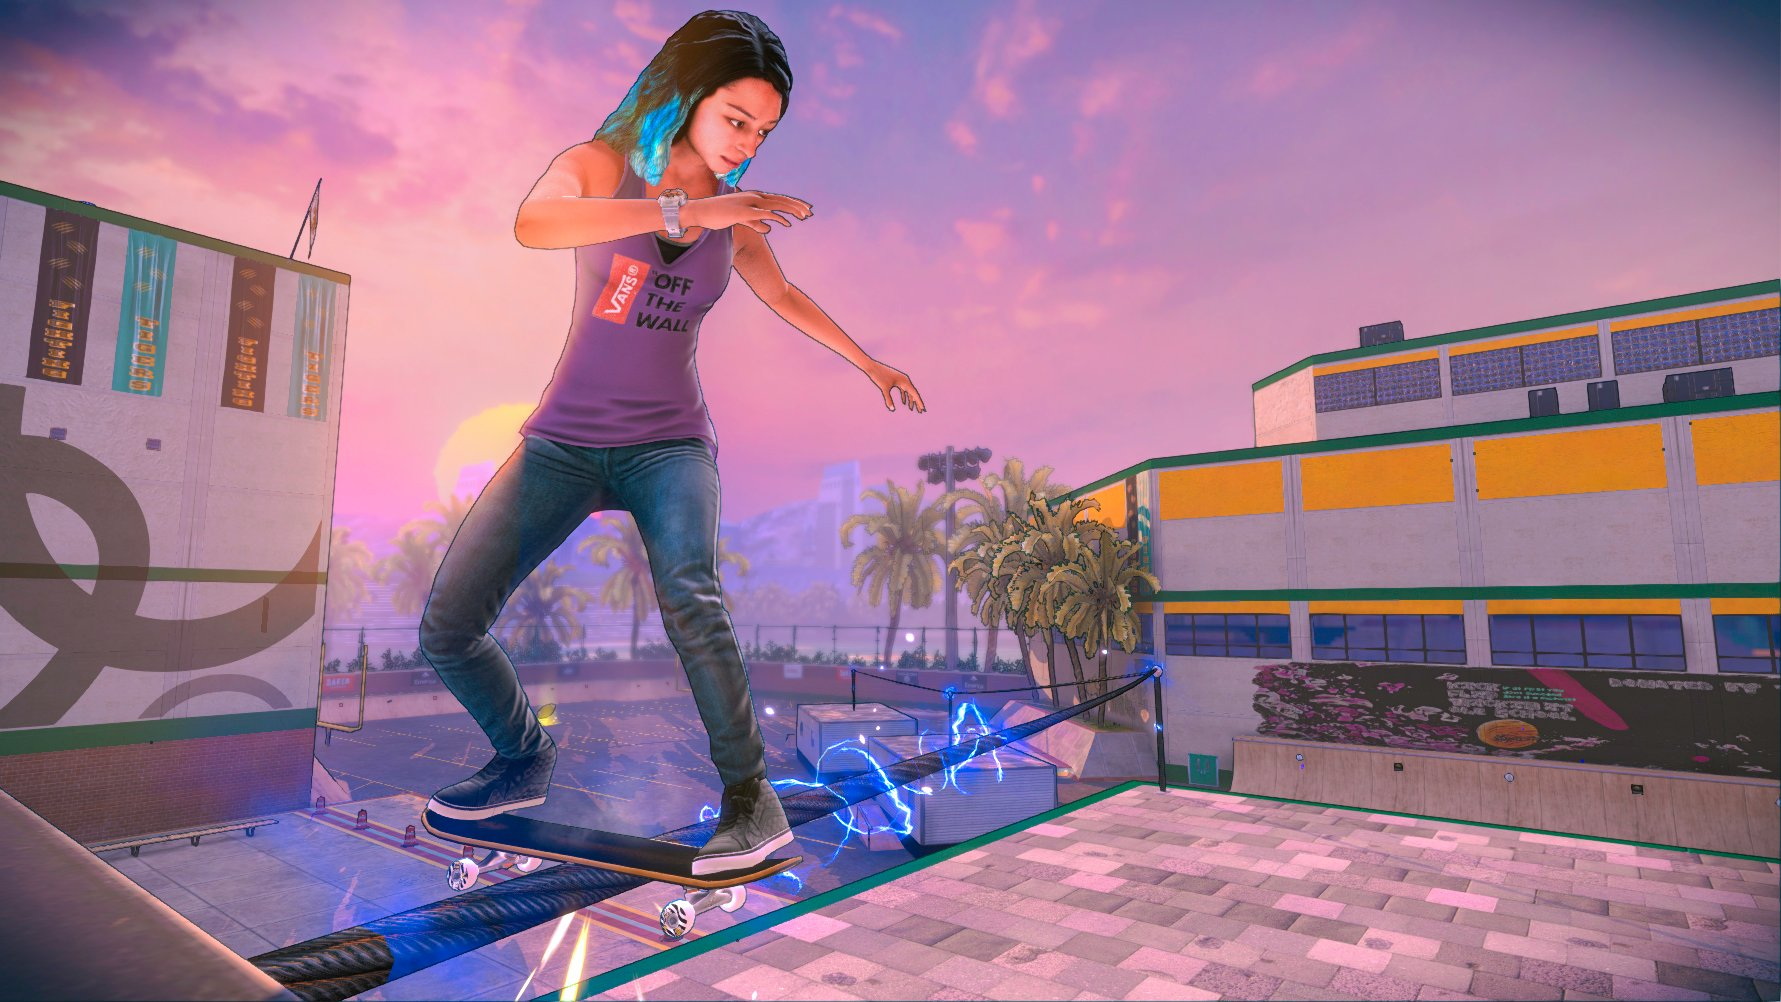 Tony Hawk's Pro Skater 5 Has Received A Cel-Shaded Makeover